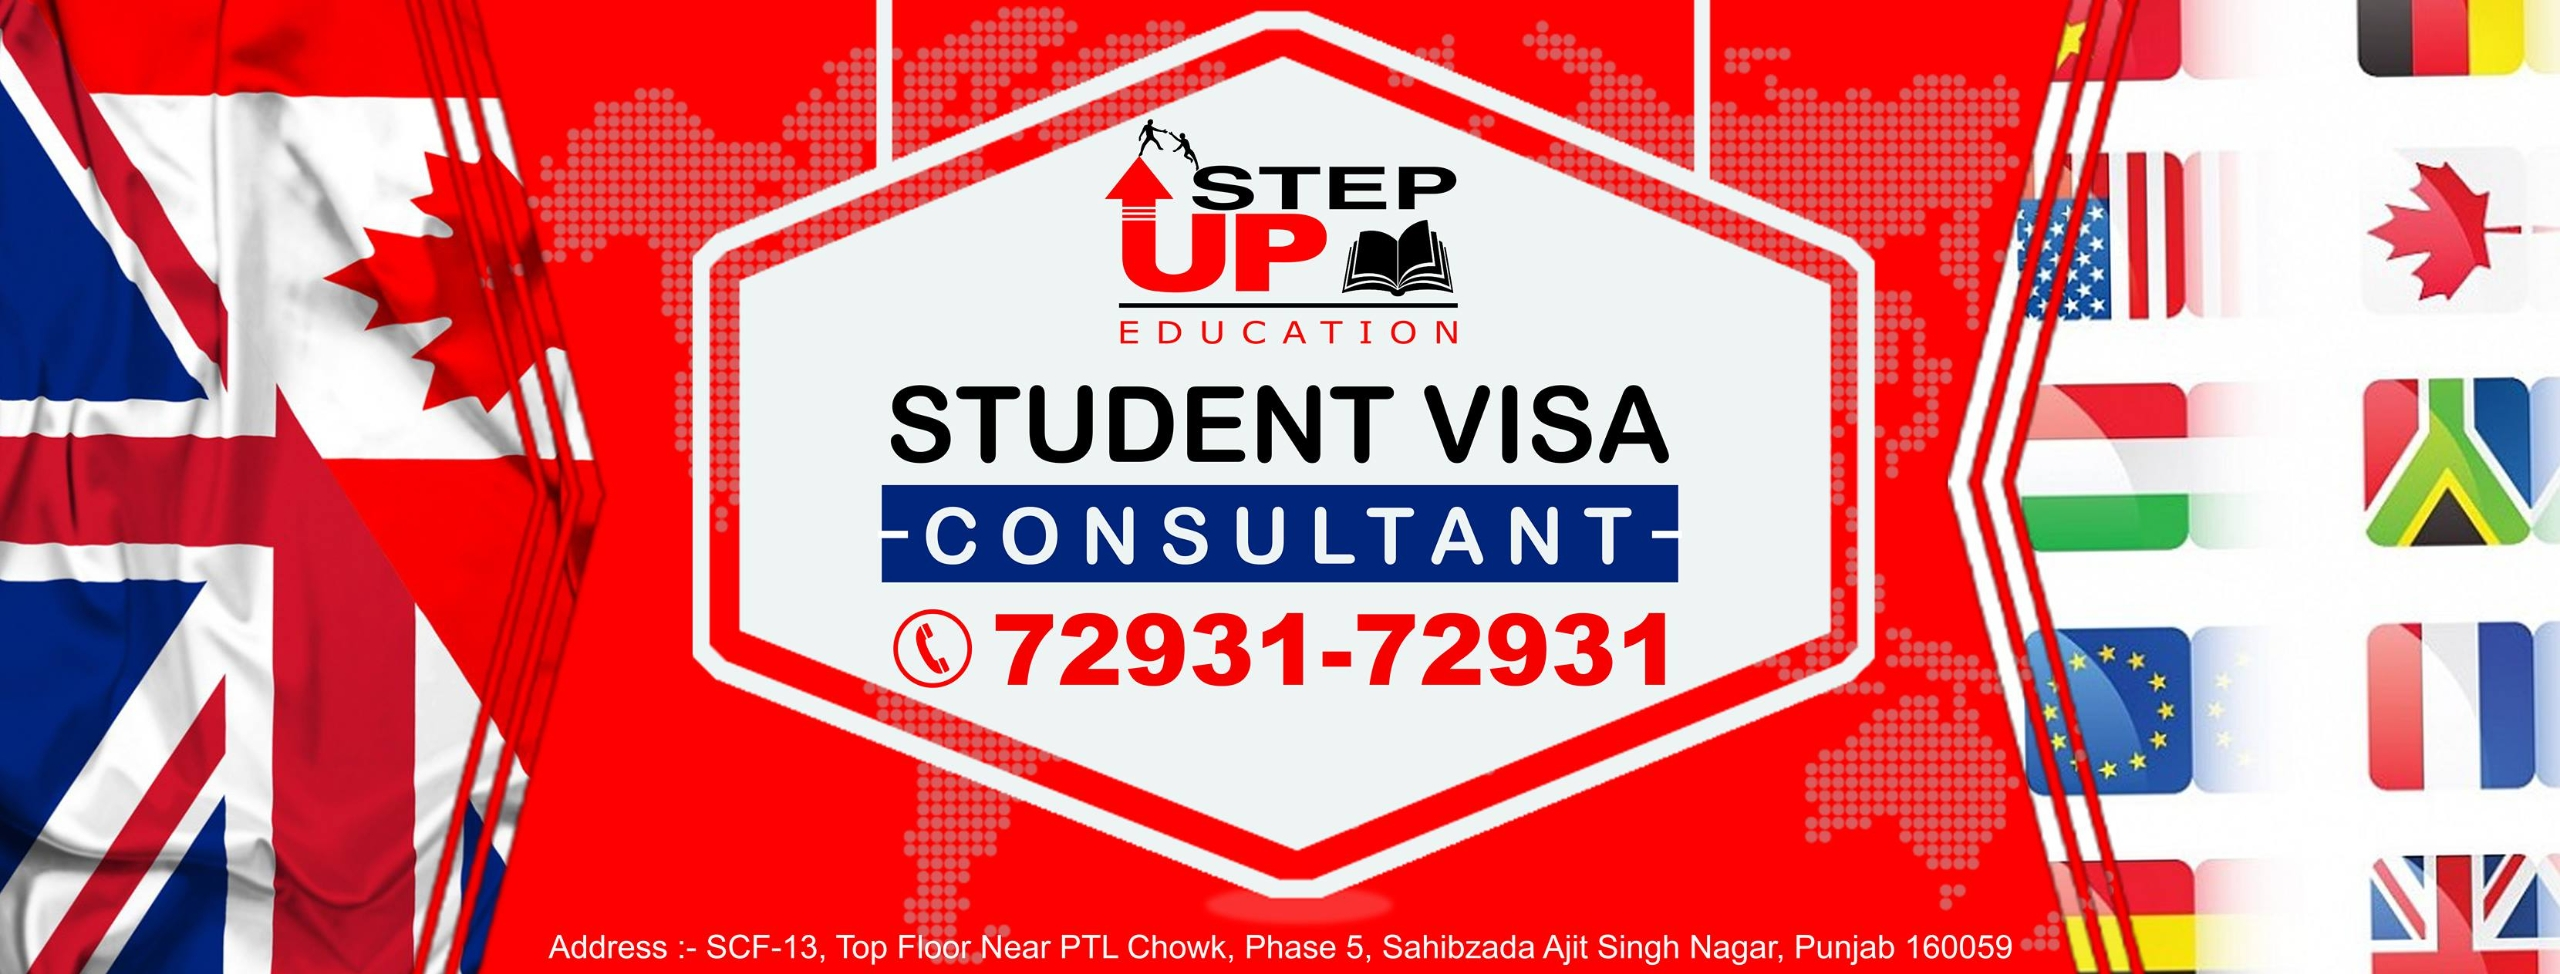 StepUp Education (@stepupeducations) Cover Image